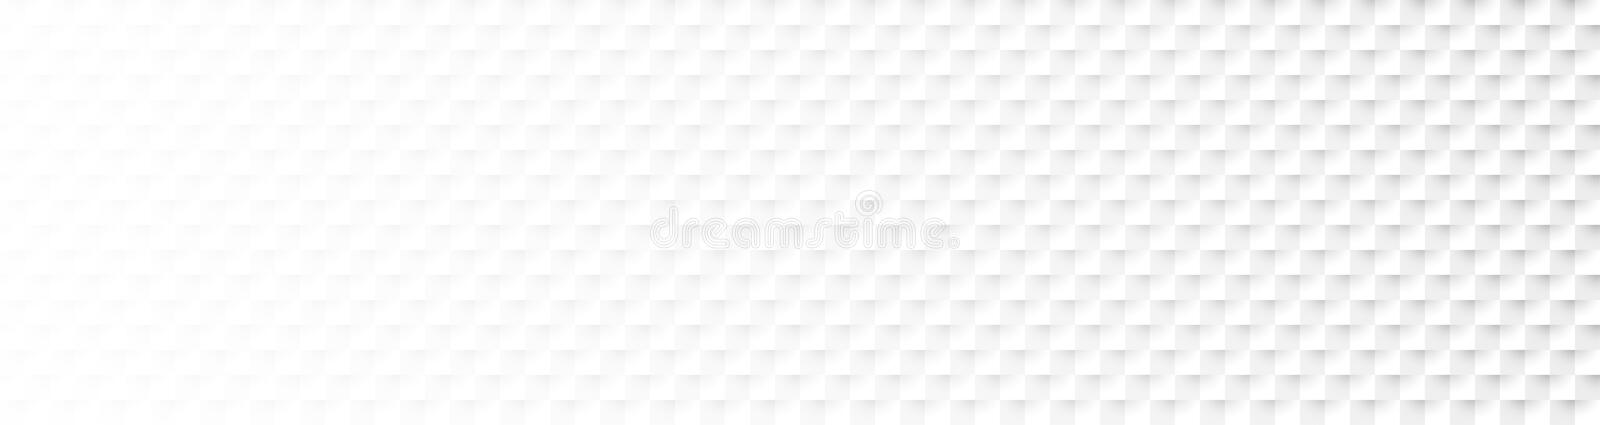 Abstract Checkered Paper Flow Headline. Monochrome abstract checkered paper background royalty free illustration